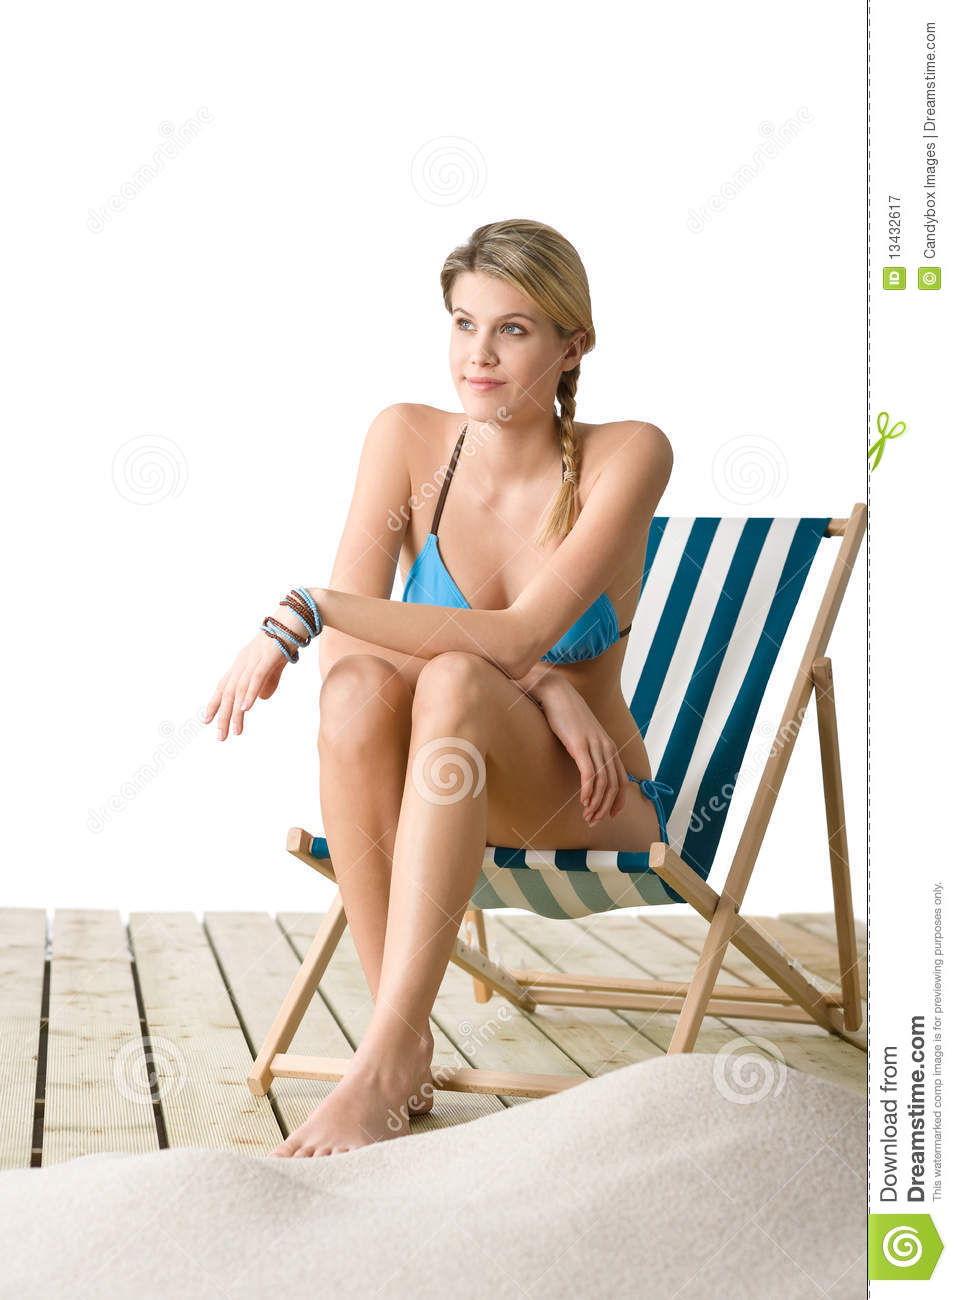 Beach - Woman In Bikini Sitting On Deck Chair Royalty Free Stock ...